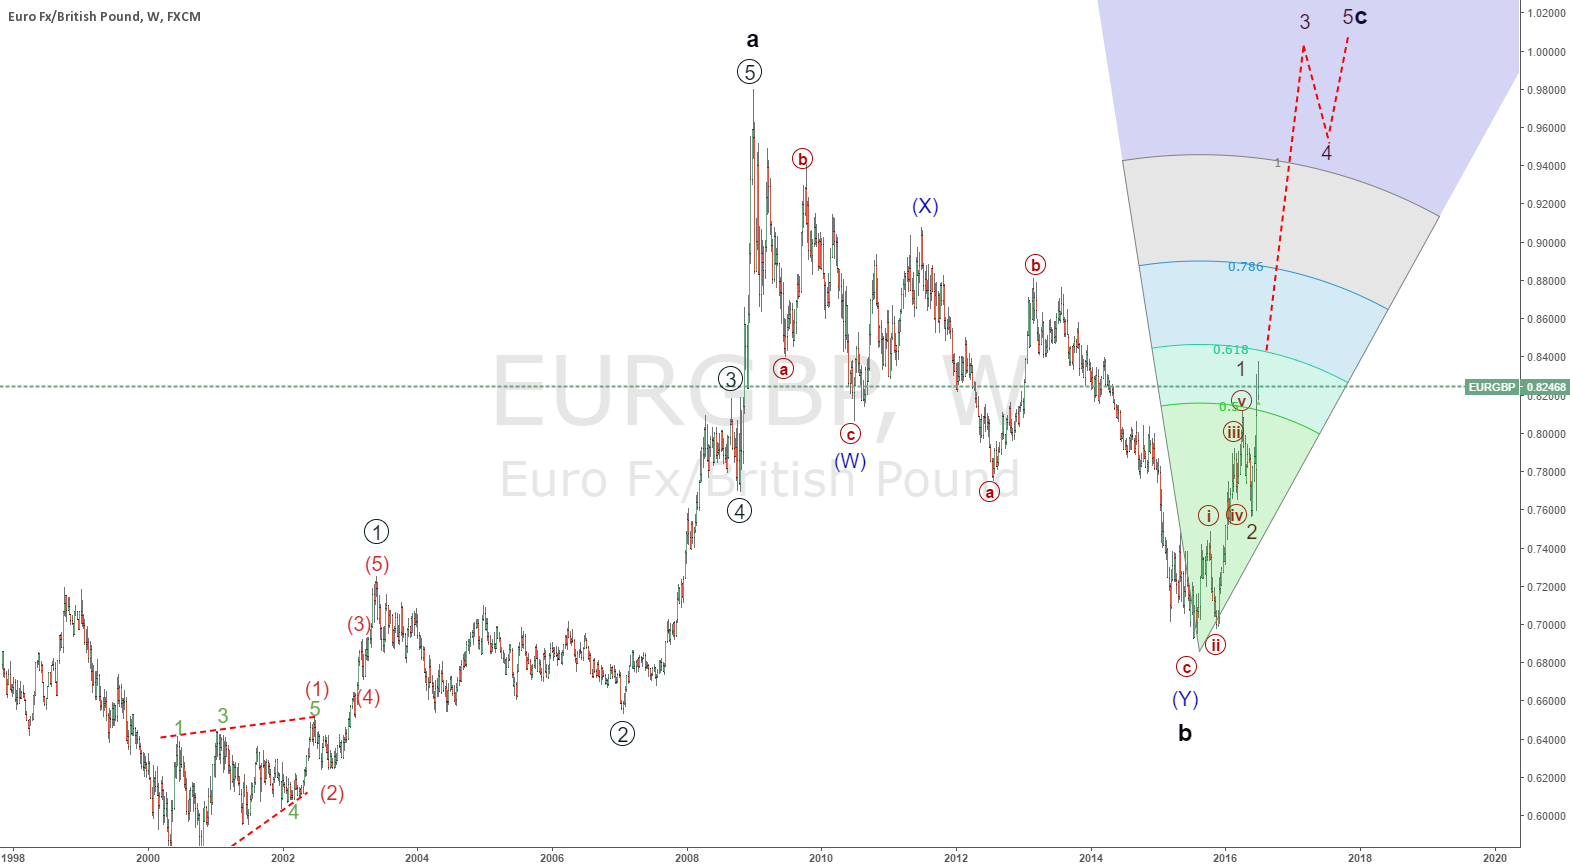 eurgbp  forecast long term wave c cycle on the way to 1.1300